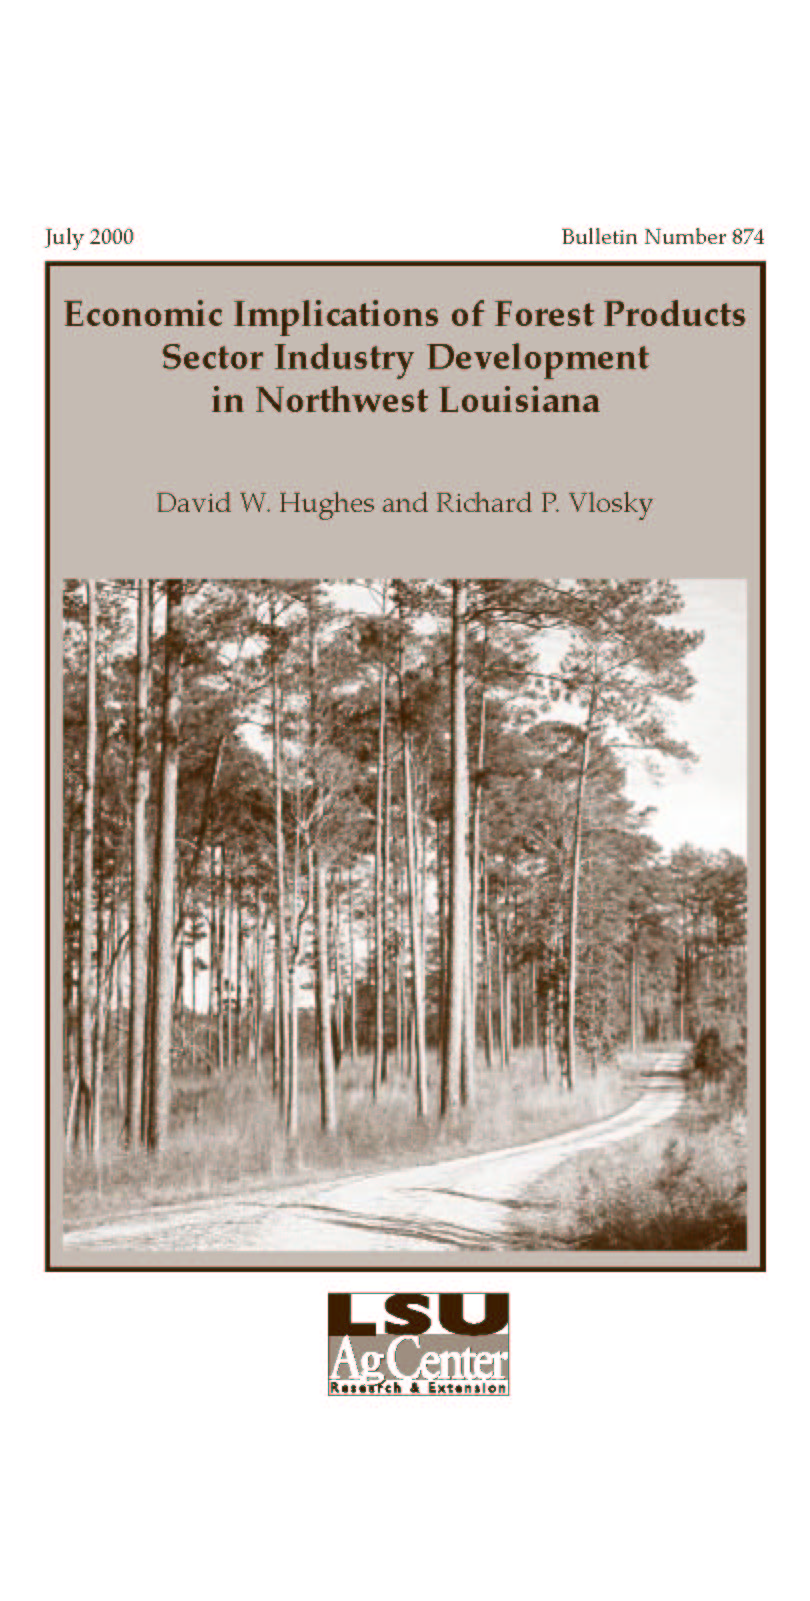 Economic Implications of Forest Products Sector Industry Development in Northwest Louisiana (July 2000)